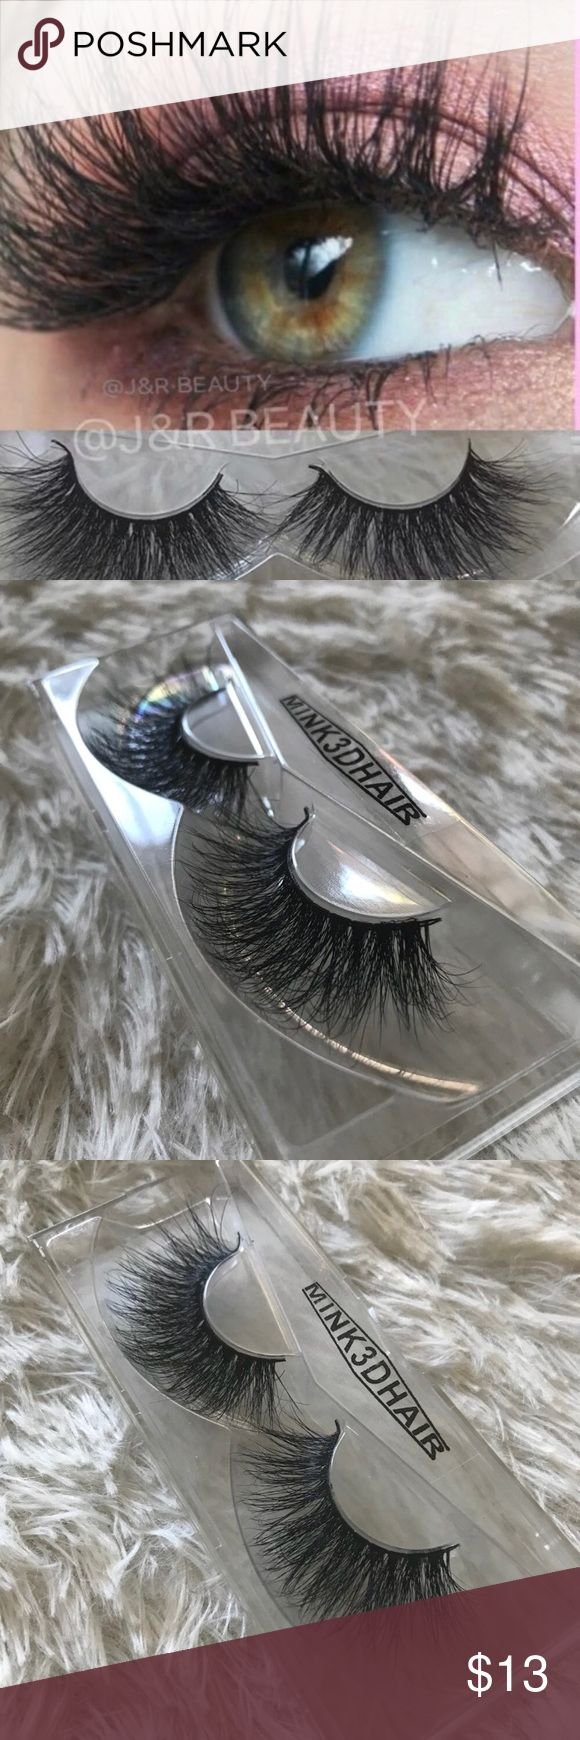 Mink lashes FULL Volume premium 1 pair +$2 Add on eyelash Applicator  +$3 Add on eyelash glue Please message me if you want to add them.  ❌No Offers ✅ Bundle &  Save  # tags Iconic, mink, red cherry eyelashes, house of lashes, doll, kawaii, case, full, natural,  Koko, Ardell, wispies, Demi , makeup, Iconic, mink, red cherry eyelashes, house of lashes, doll, kawaii, case, full, natural,  Koko, Ardell, wispies, Demi , makeup, mascara, eyelash applicator, Mykonos Mink , Lashes , wispy ,eyelash…